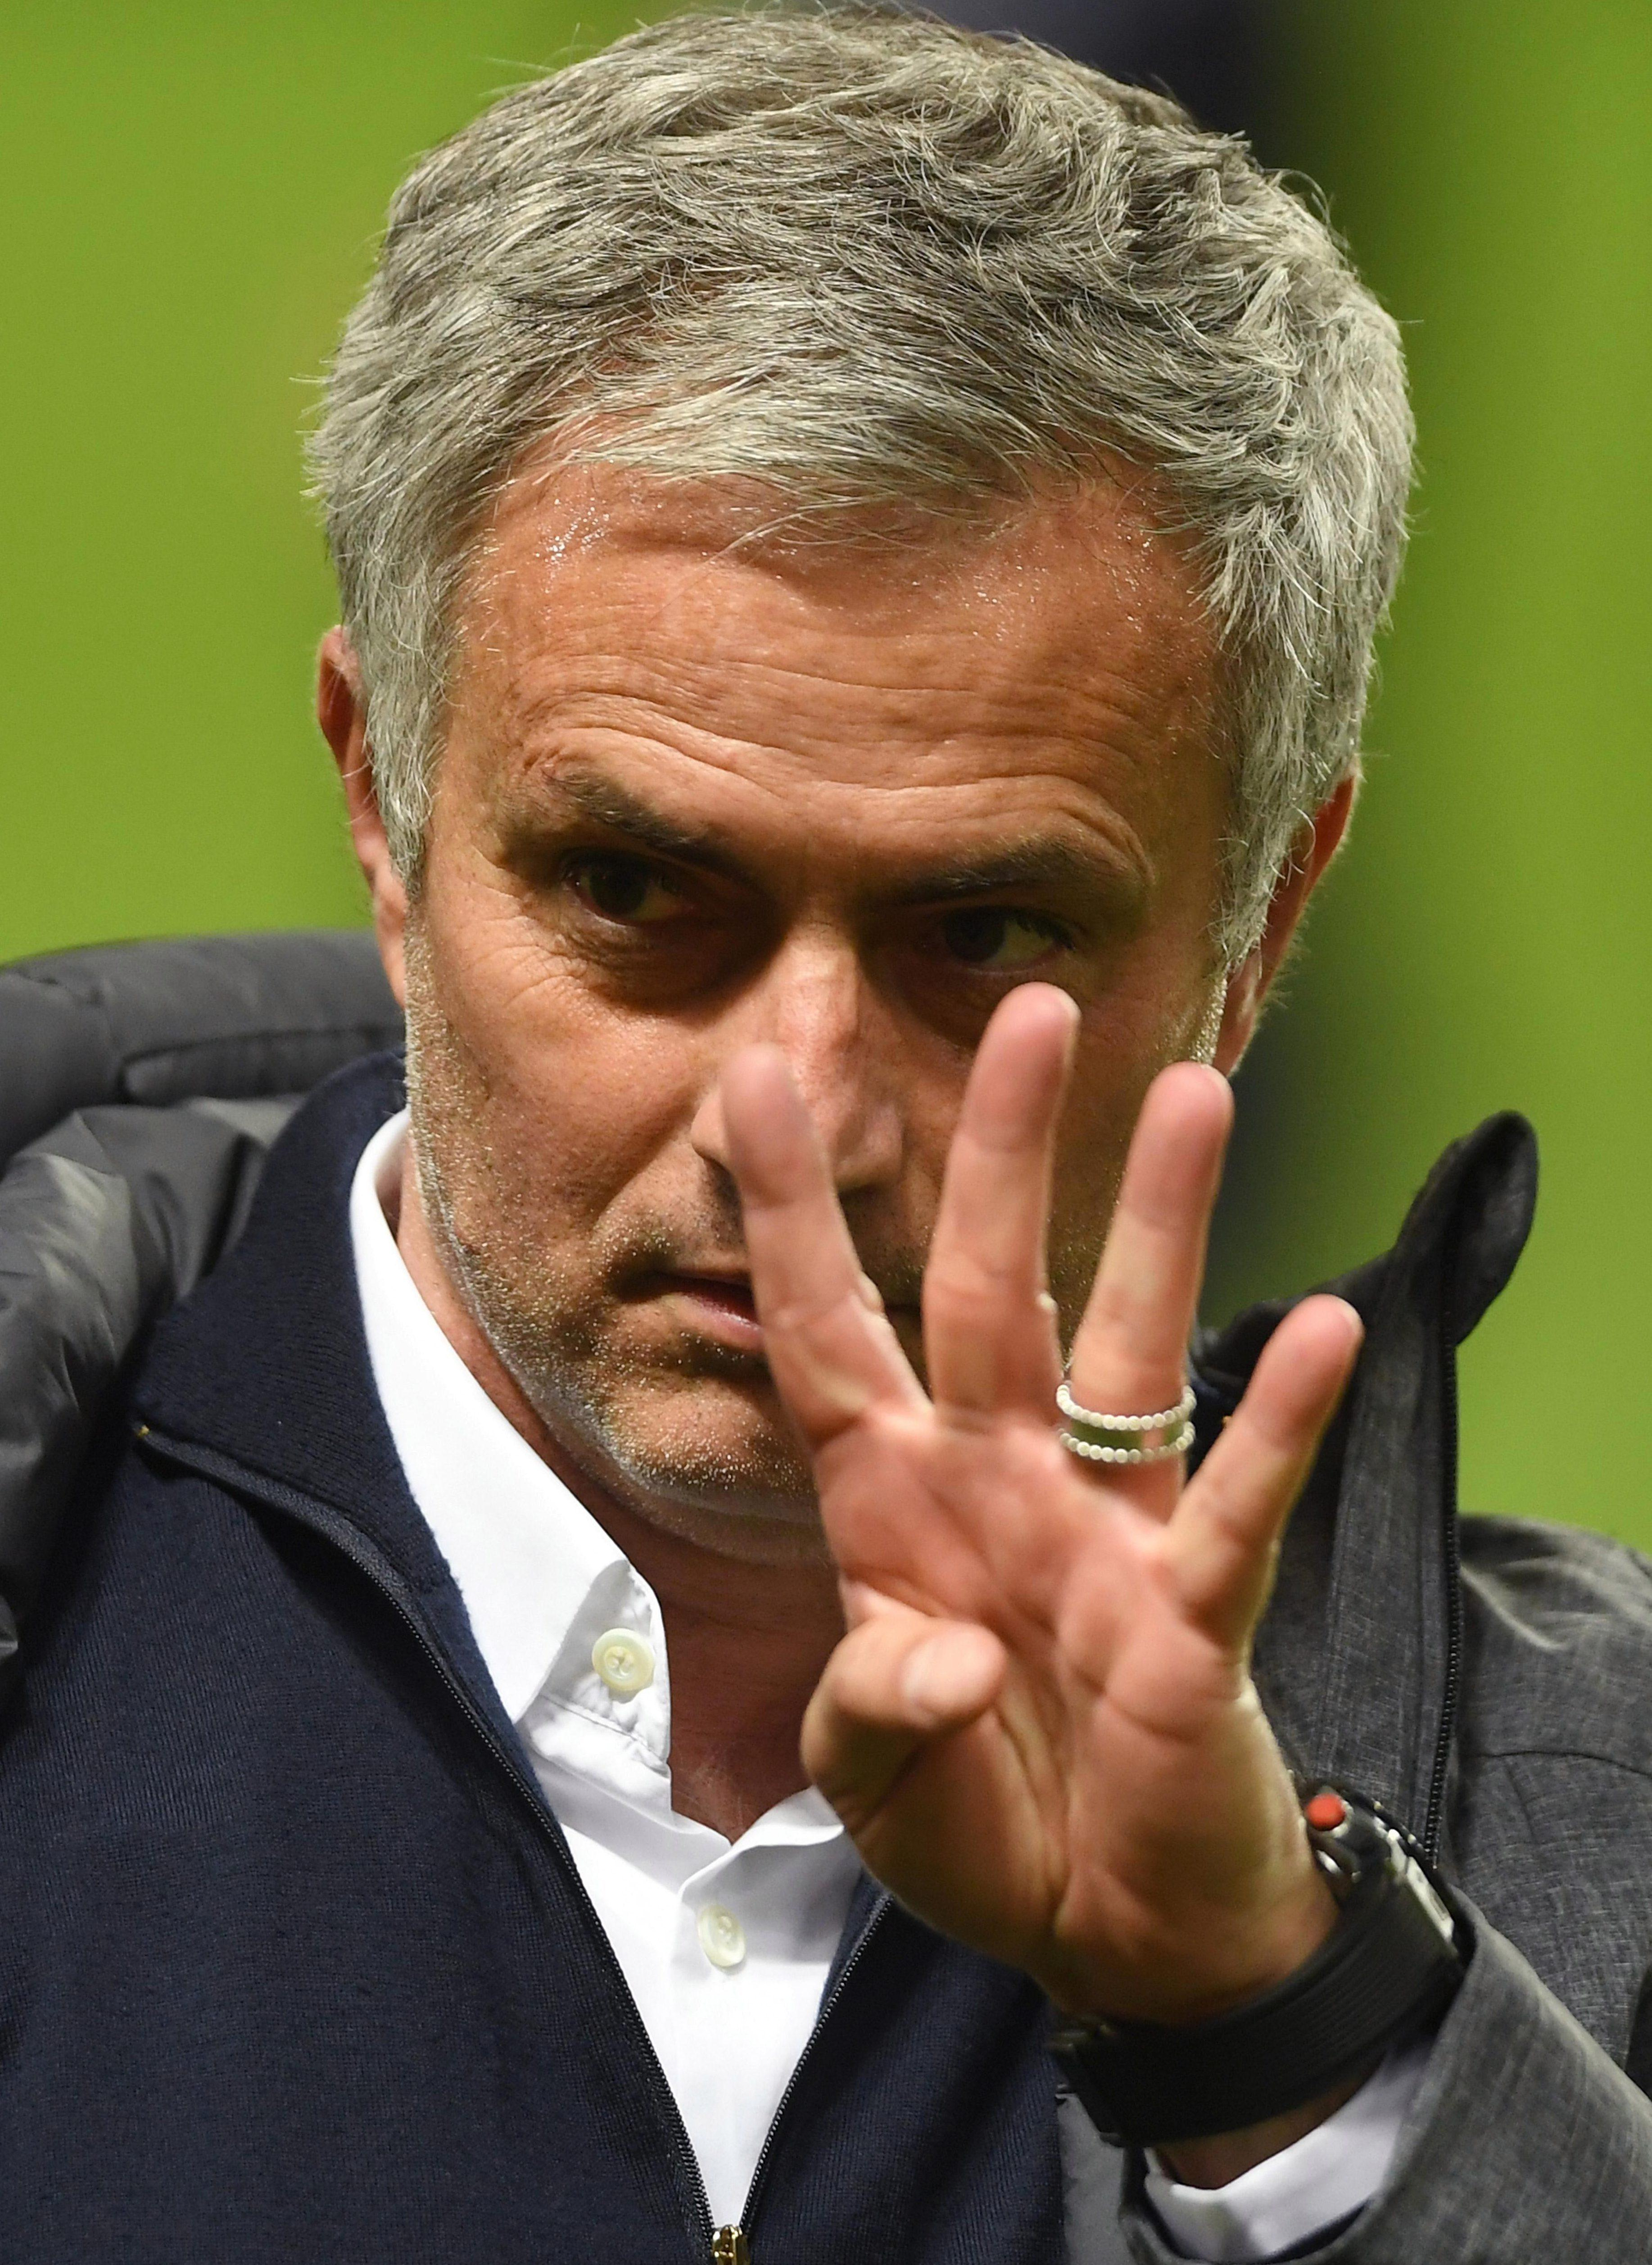 But Jose Mourinho arrived at Old Trafford too late to do the deal